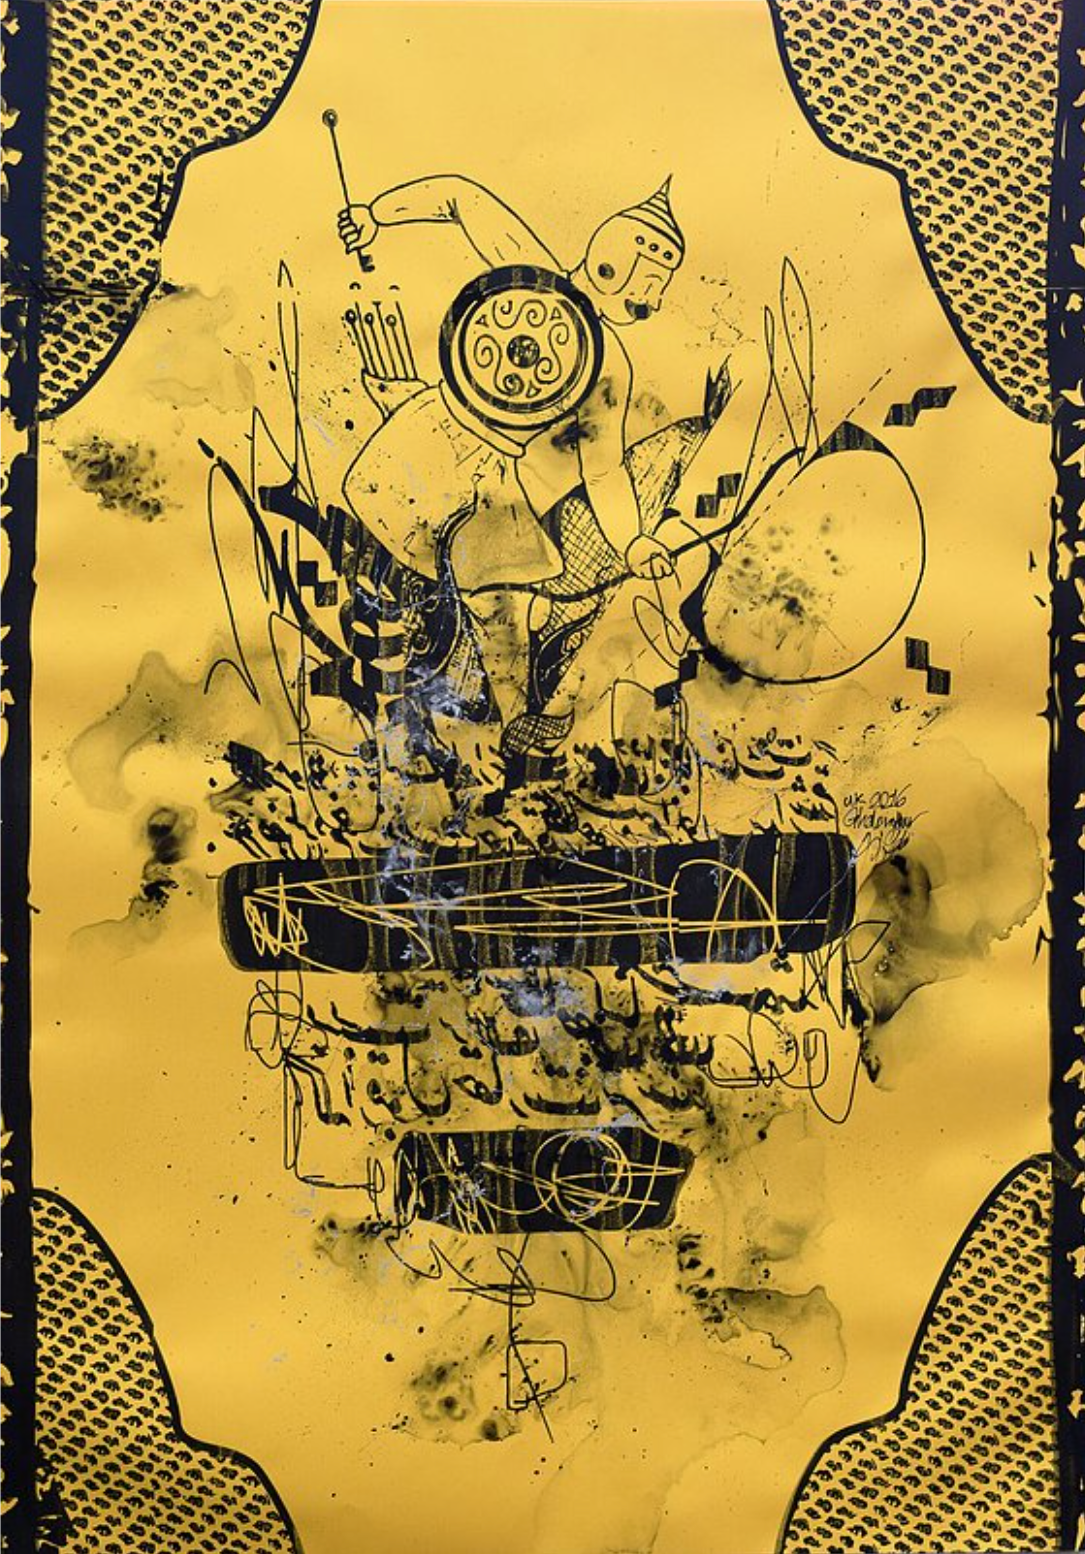 Ghalamdar, Untitled, ink and spray paint on pearl scent paper, 84 x 60 cm, 2016